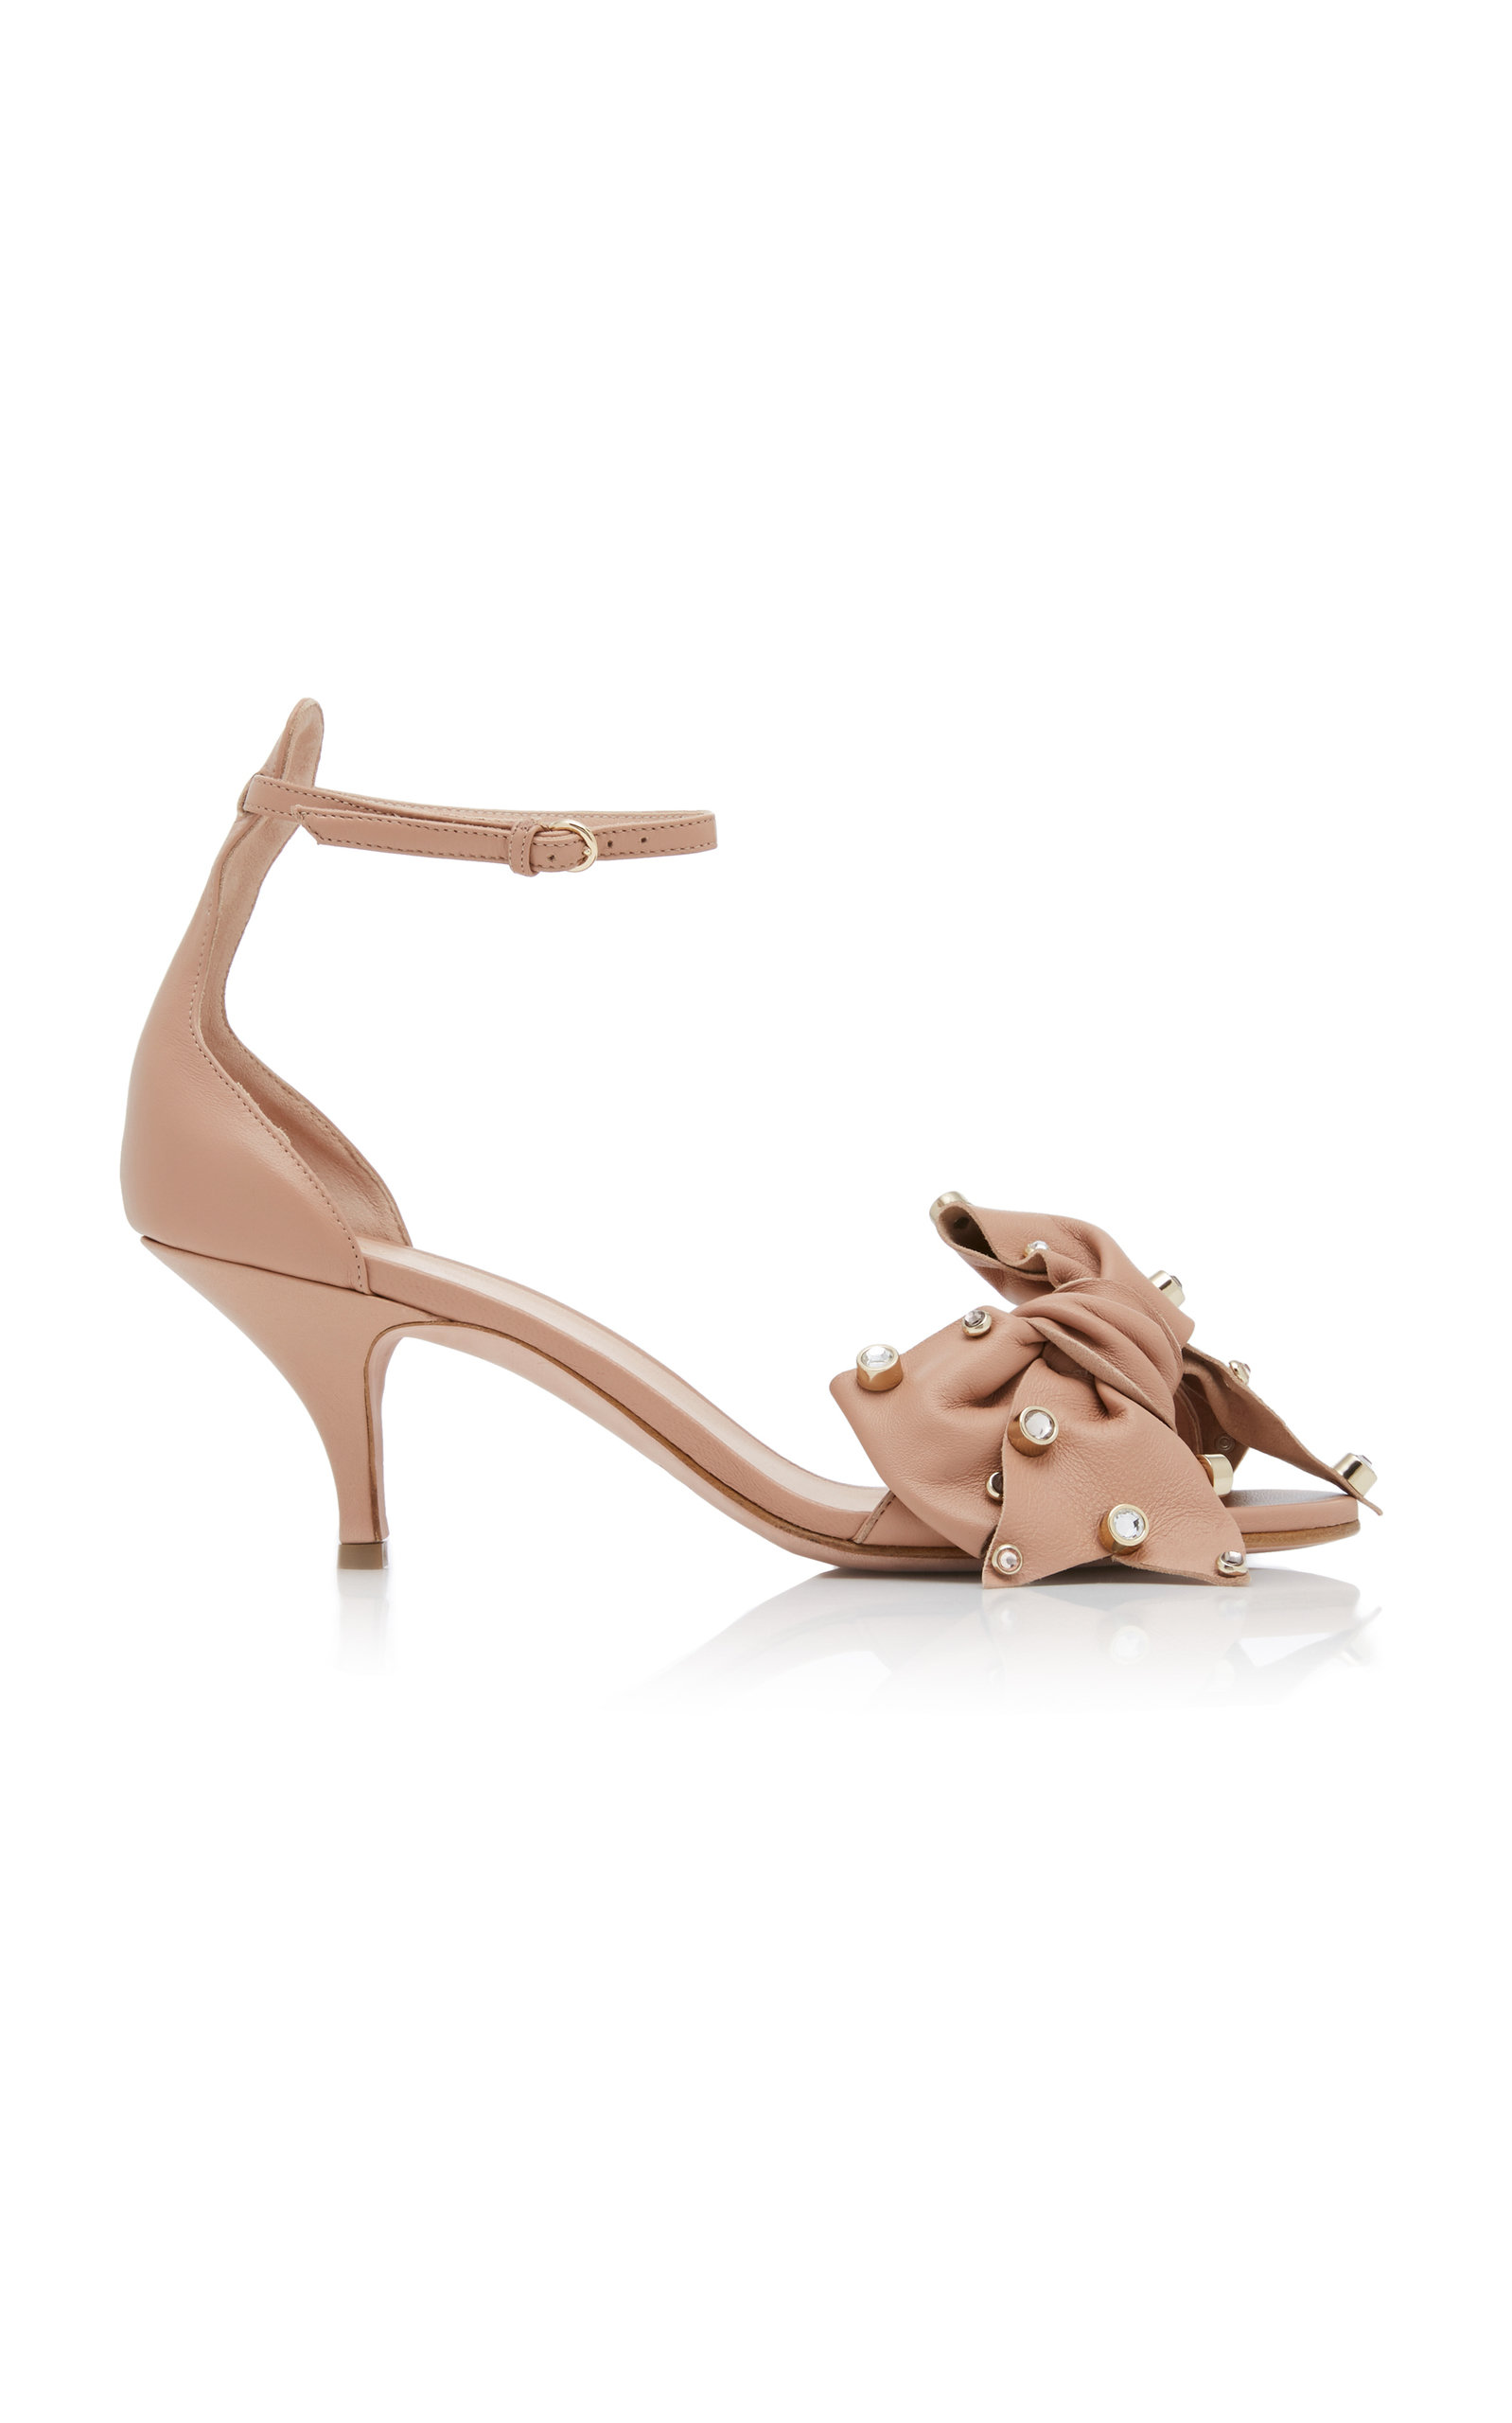 RED VALENTINO KNOTTED SANDAL